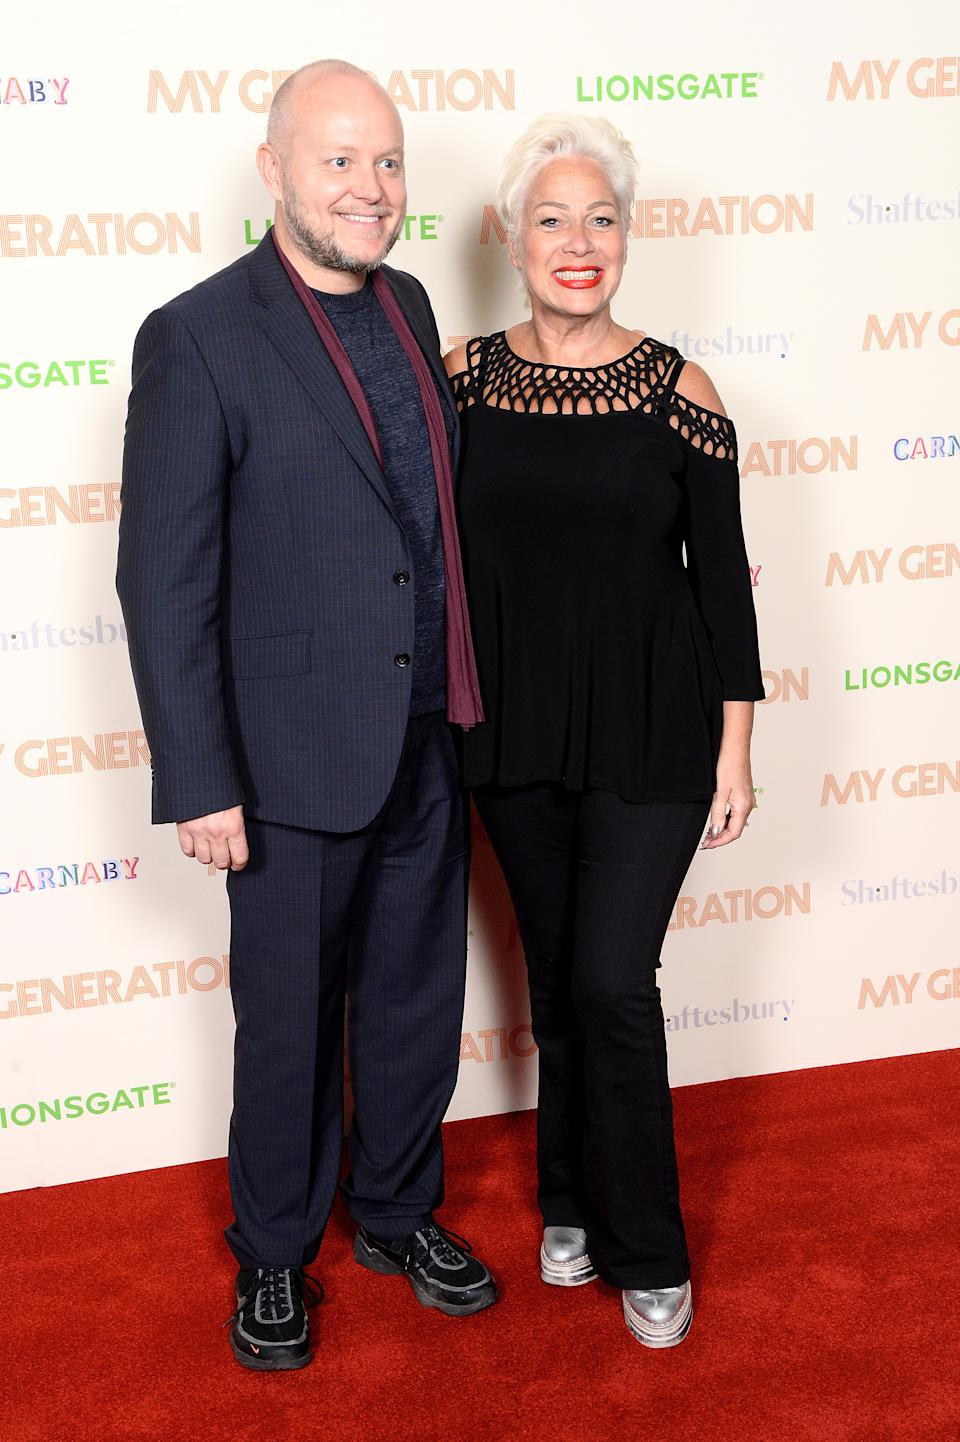 Lincoln Townley (L) and Denise Welch attend the My Generation special screening at BFI Southbank on March 14, 2018 in London, England. (Photo by Dave J Hogan/Dave J Hogan/Getty Images)